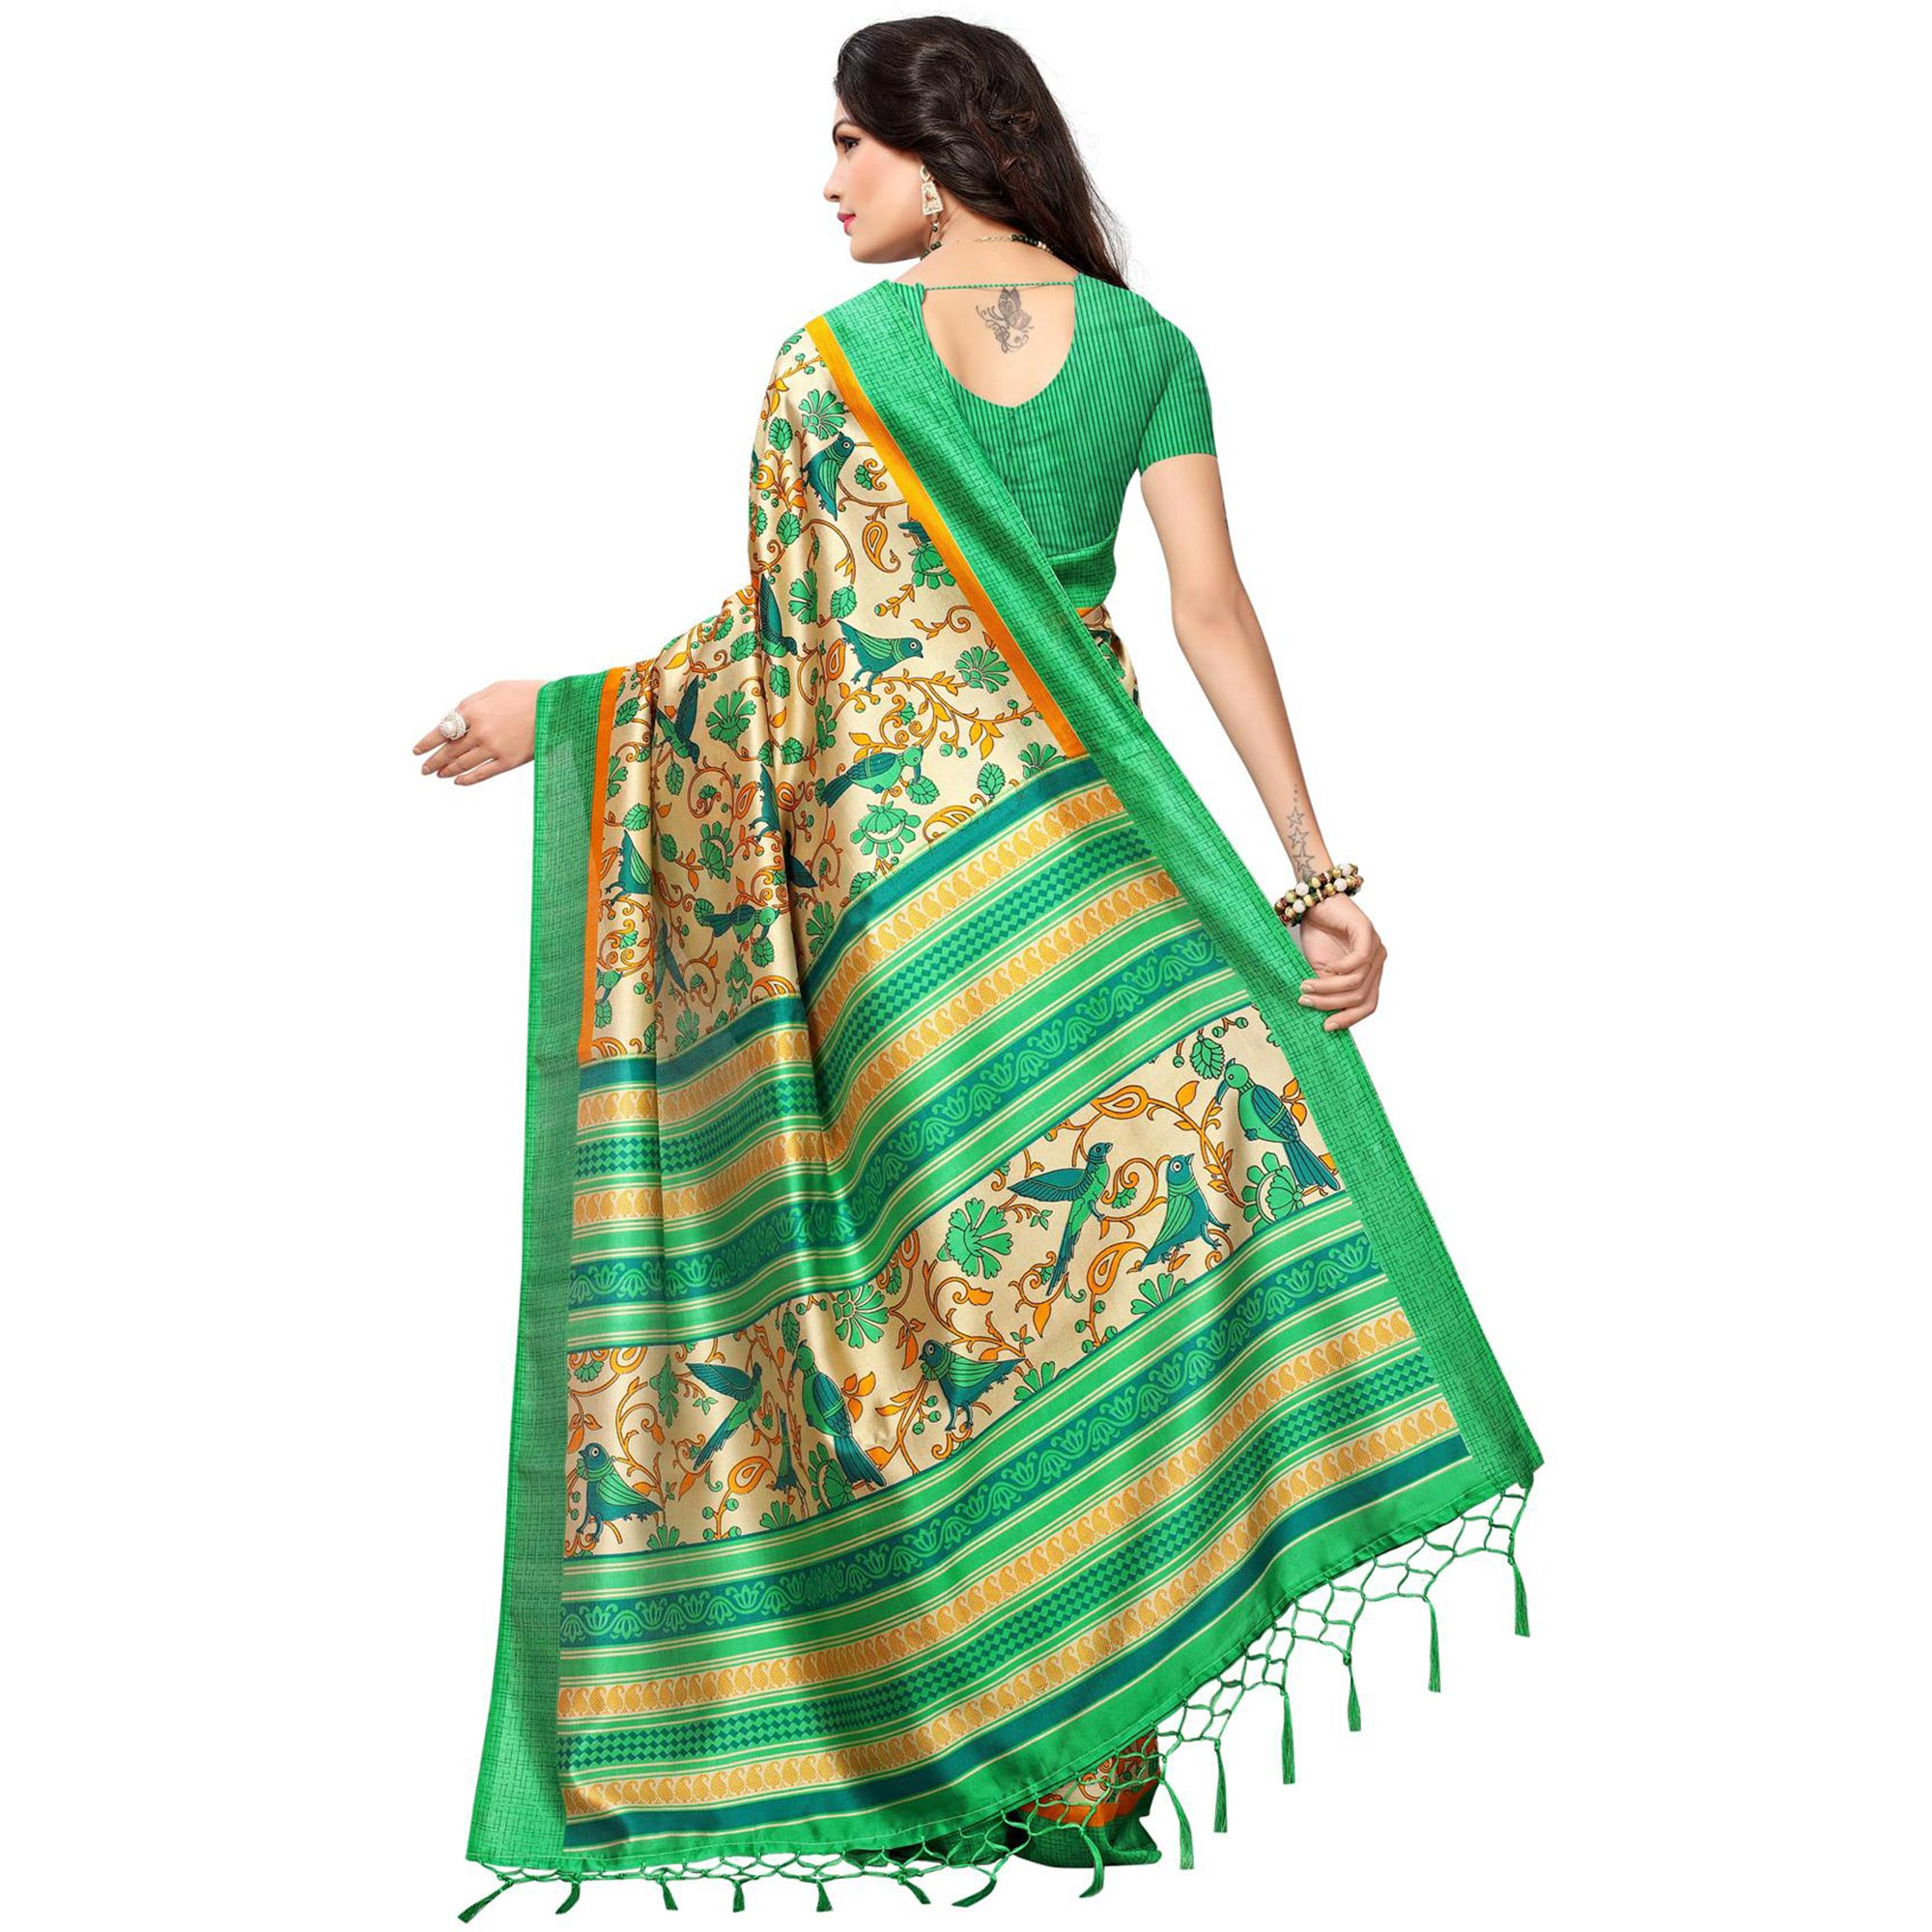 Observable Beige-Green Colored Festive Wear Printed Mysore Art Silk Saree